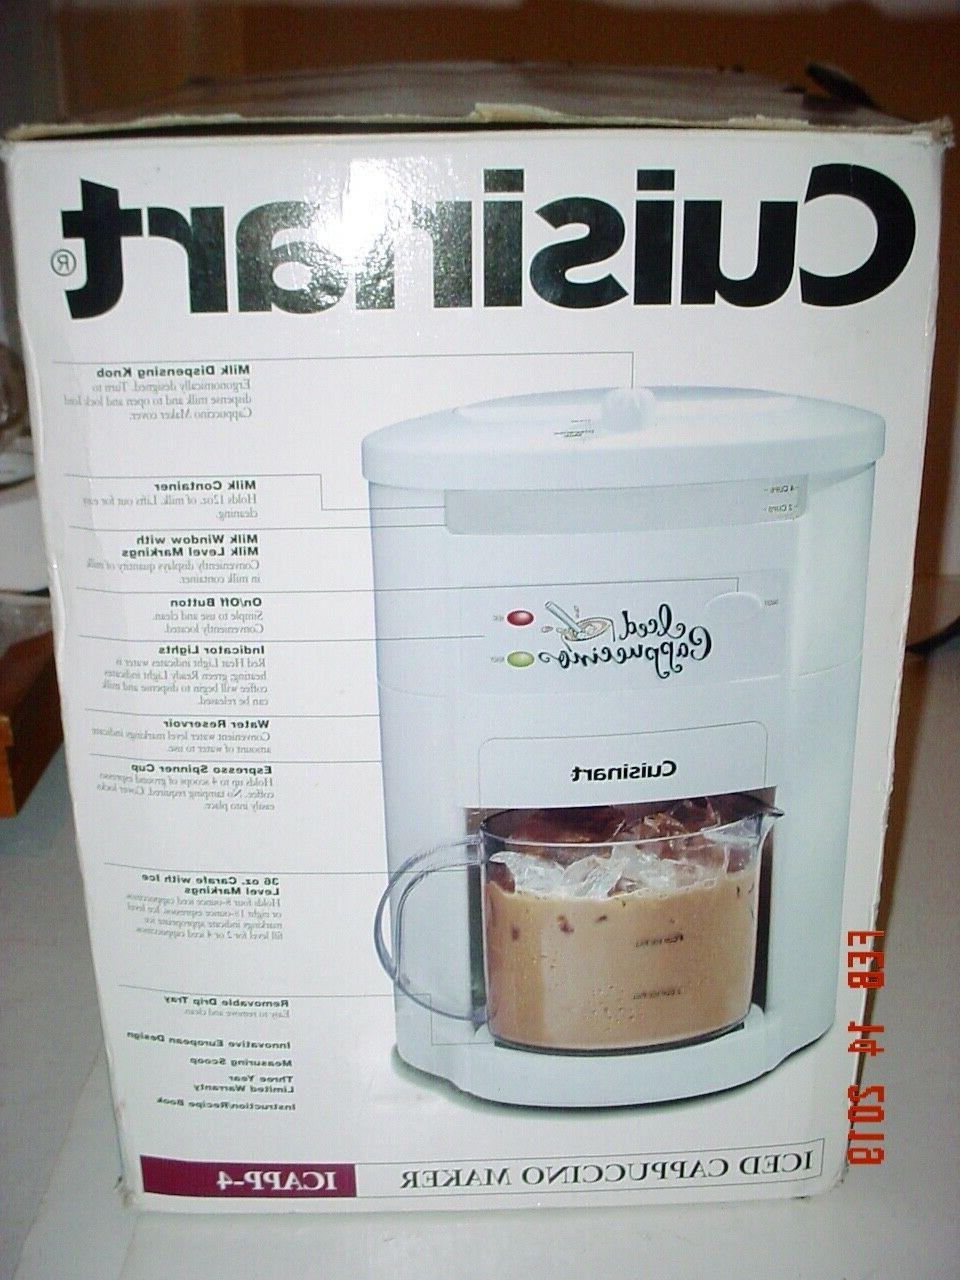 CUISINART CUP CAPPUCCINO OR HOT USED -